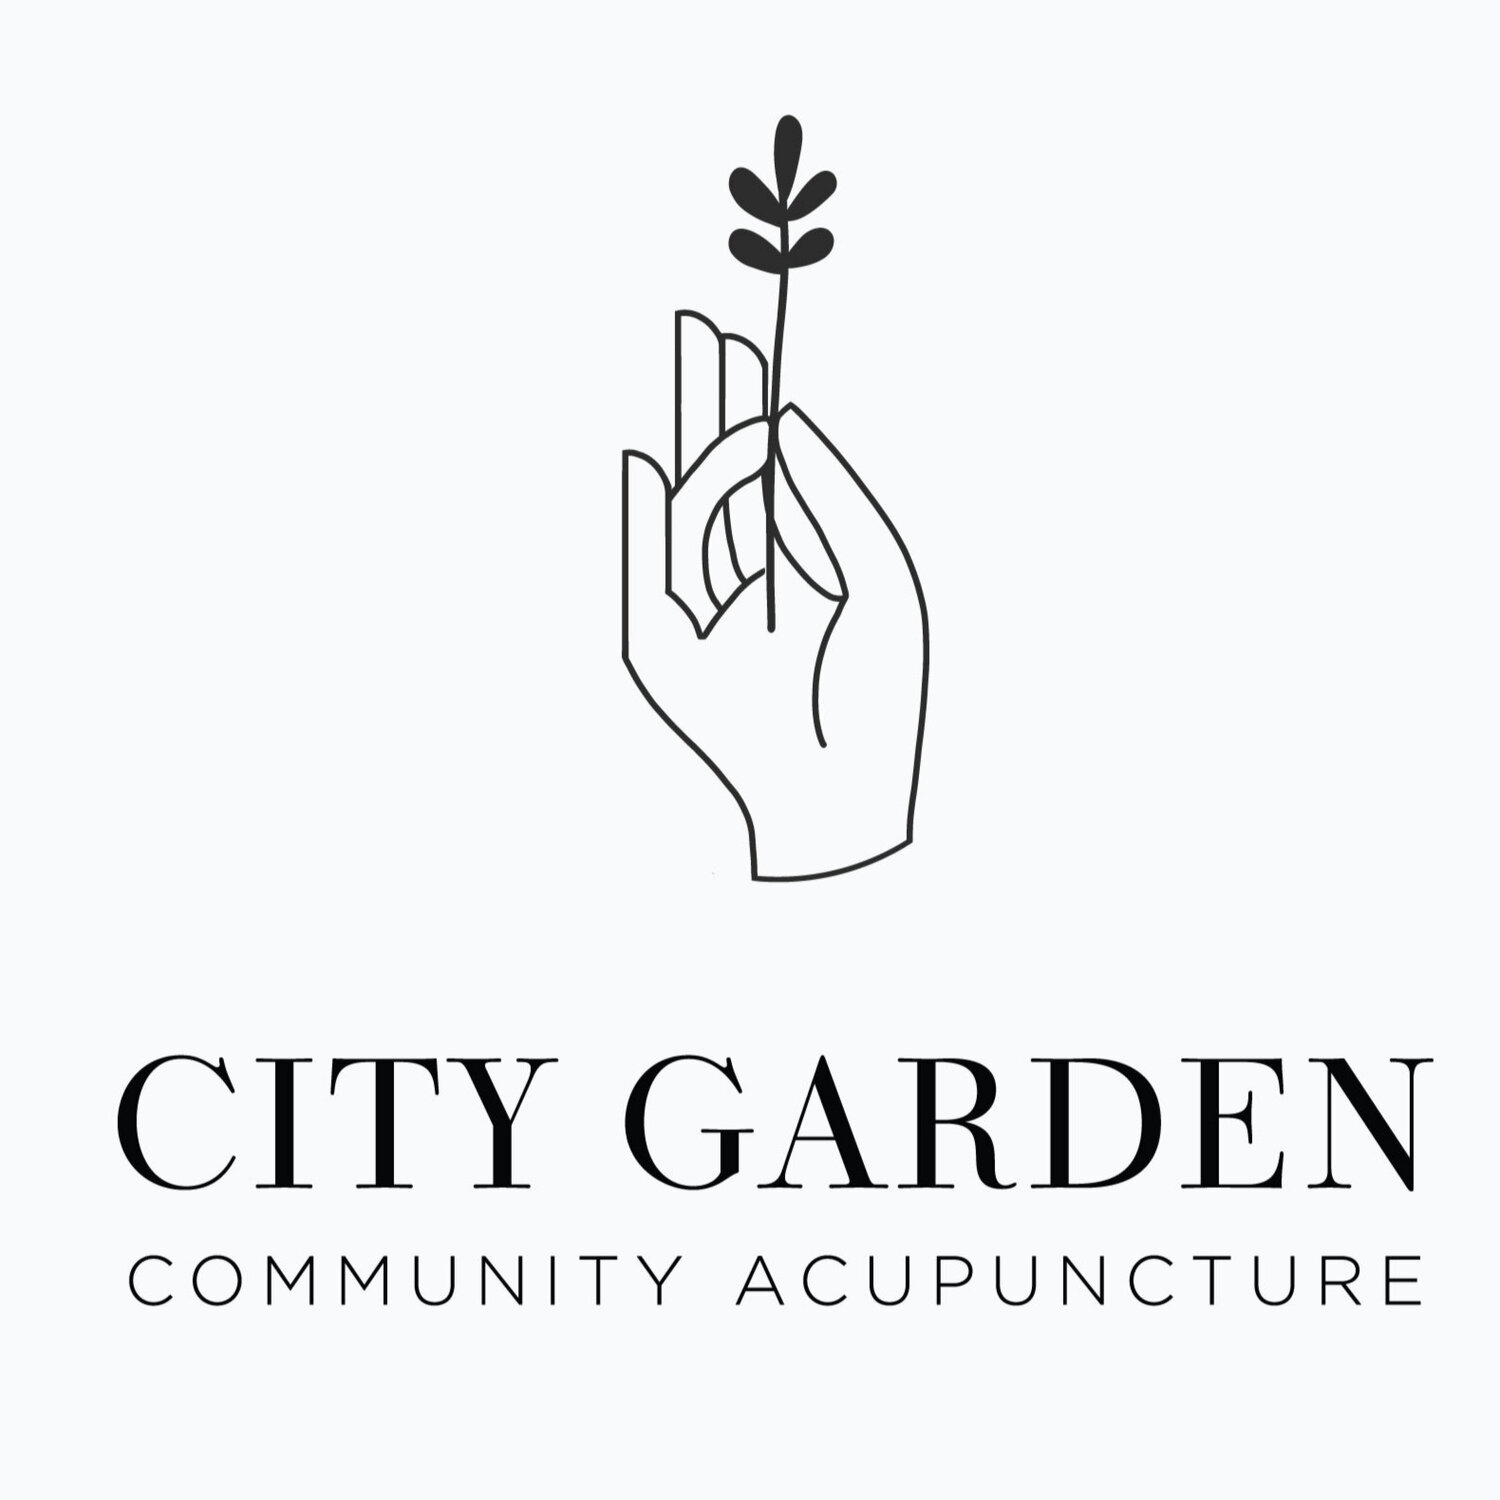 City Garden Community Acupuncture